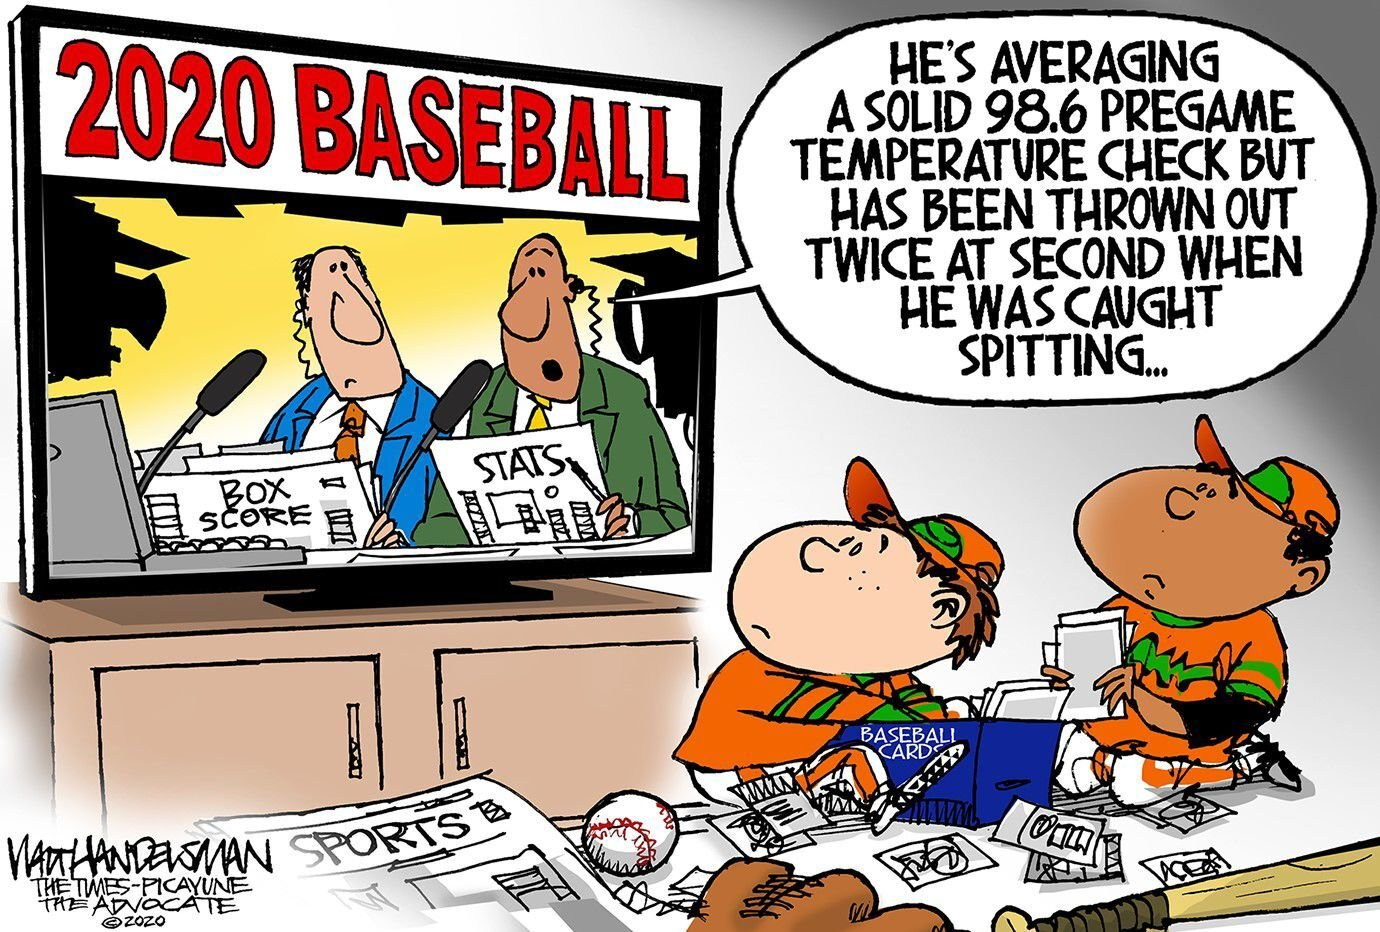 Think Toon by Walt Handelsman